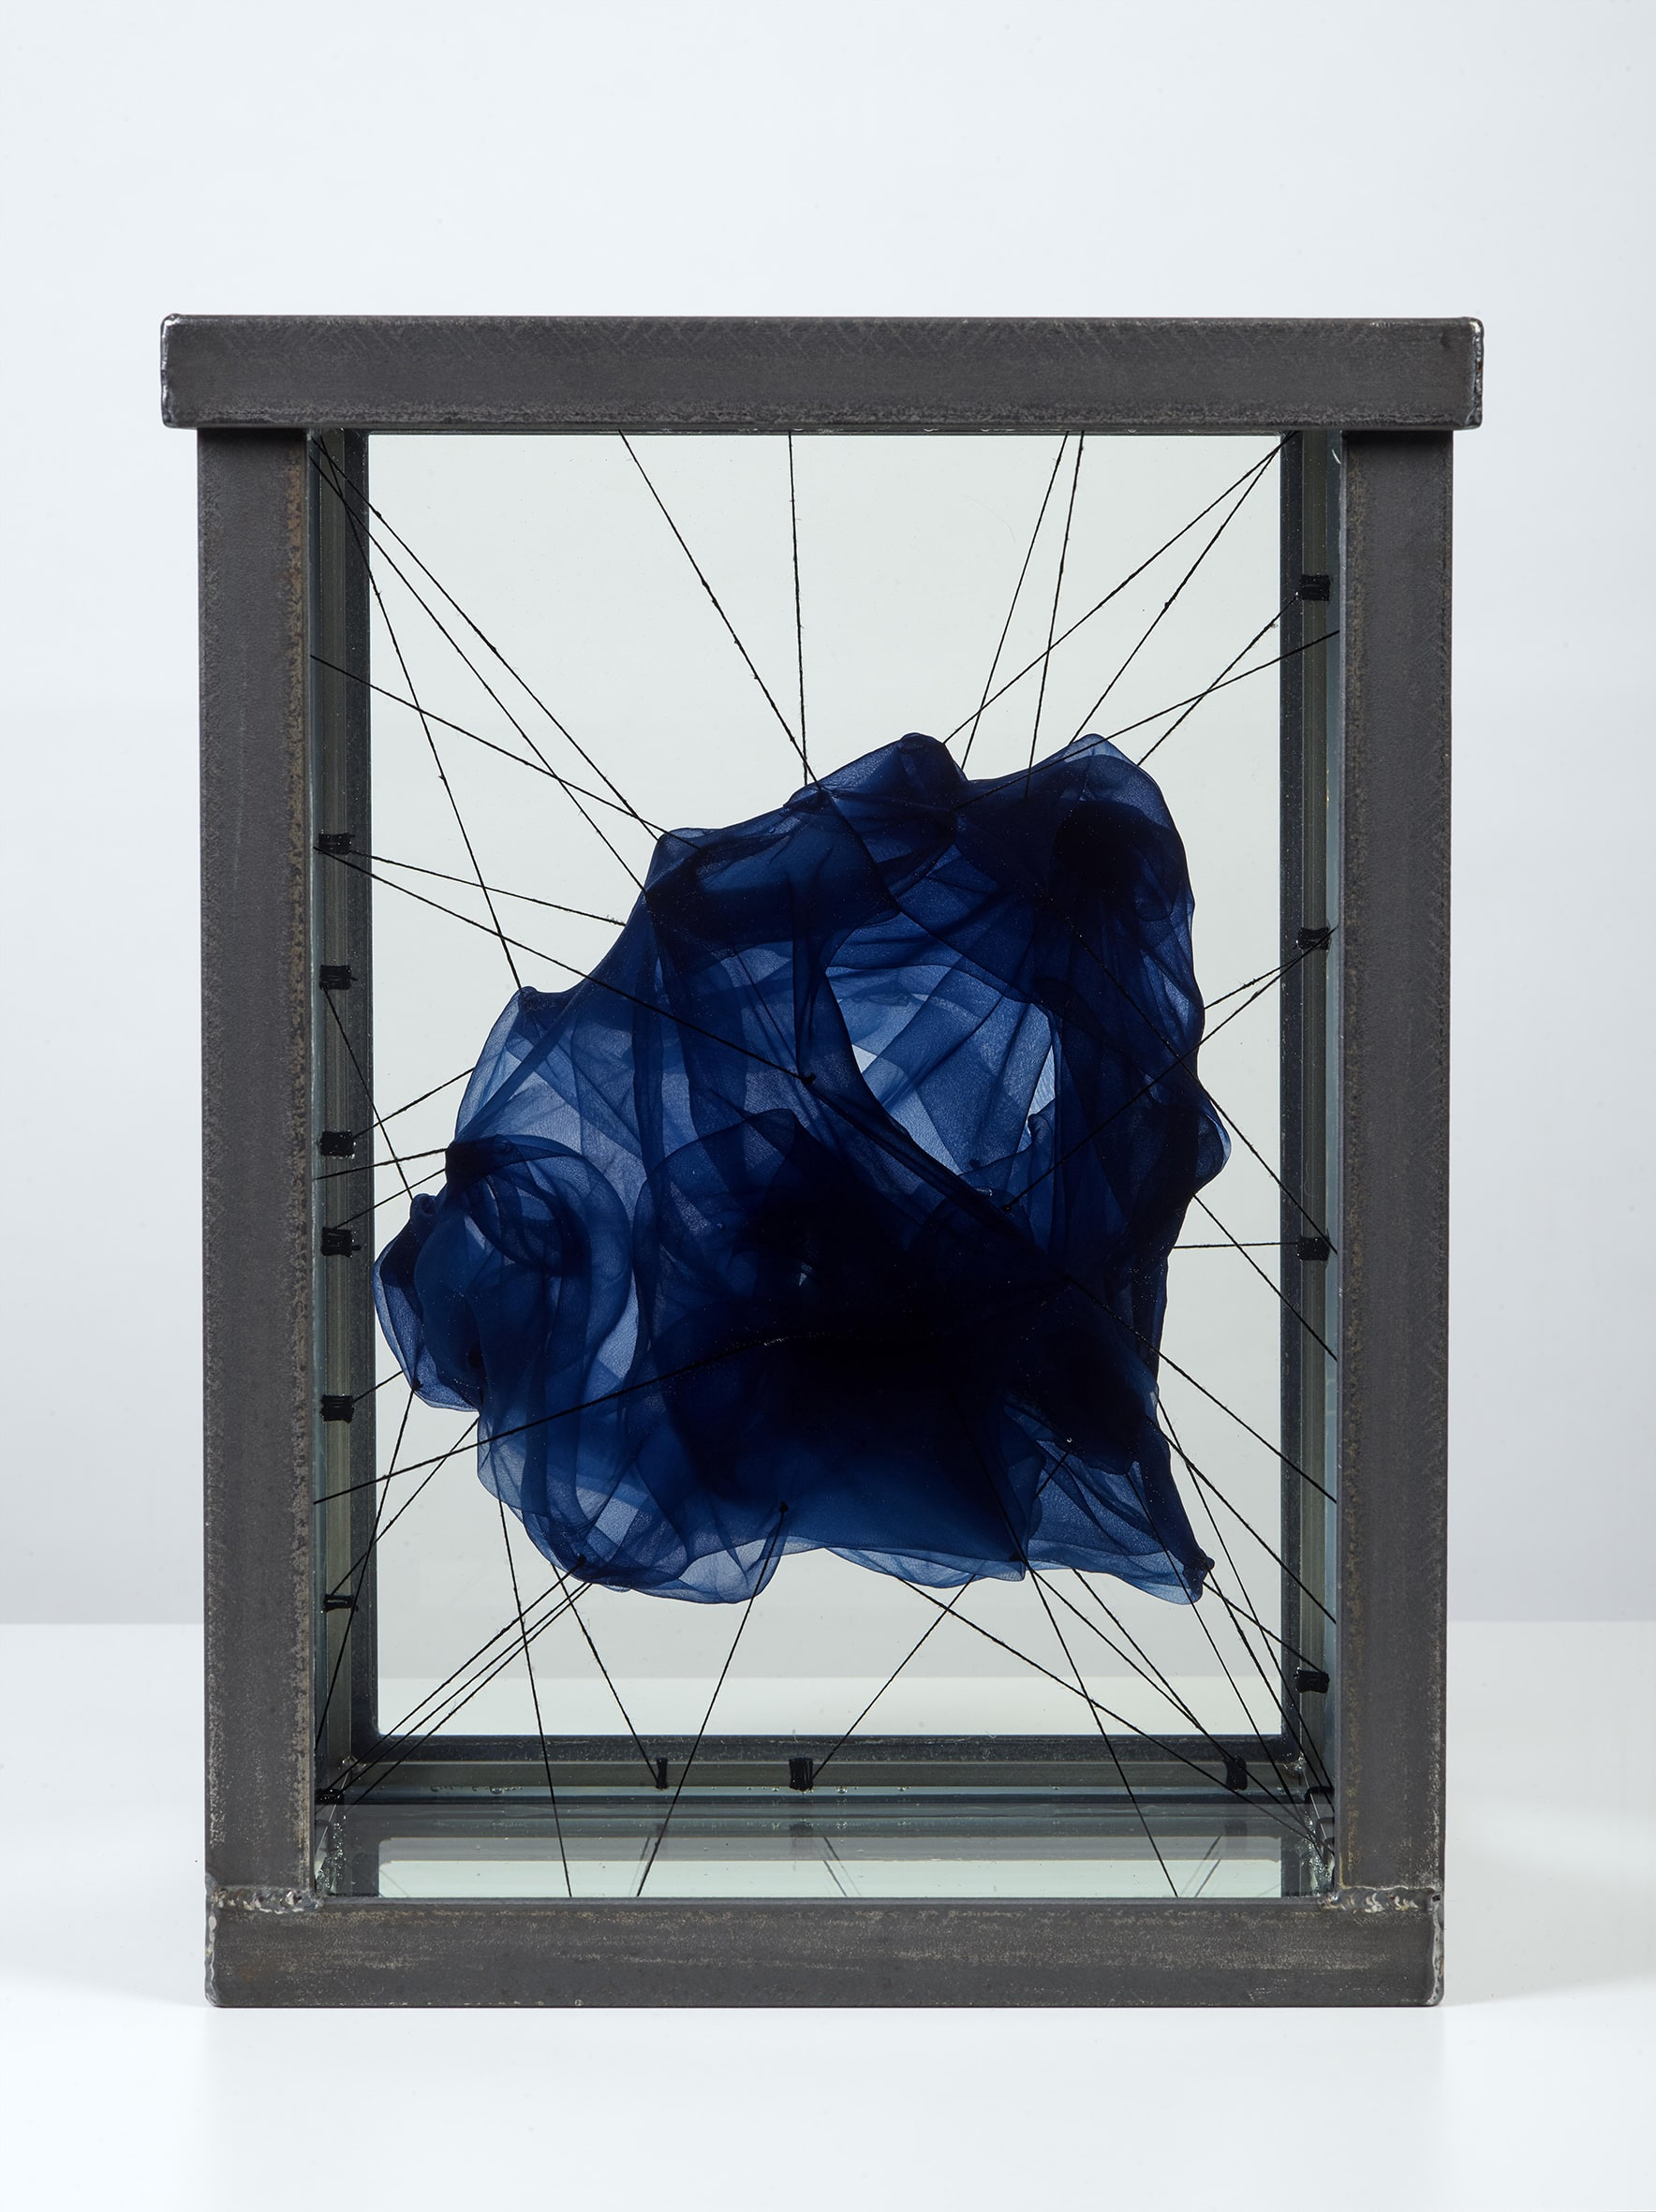 "<span class=""link fancybox-details-link""><a href=""/content/feature/155/artworks438/"">View Detail Page</a></span><div class=""medium"">Mixed media sculpture<br /> (Cyanotype on silk, natural fibre string, mineral oil, stainless steel and security glass)<br /> Unique</div> <div class=""dimensions"">38.5 x 28 x 28 cm<br /> 15 1/8 x 11 1/8 x 11 1/8 in</div> <div class=""edition_details"">Unique</div>"